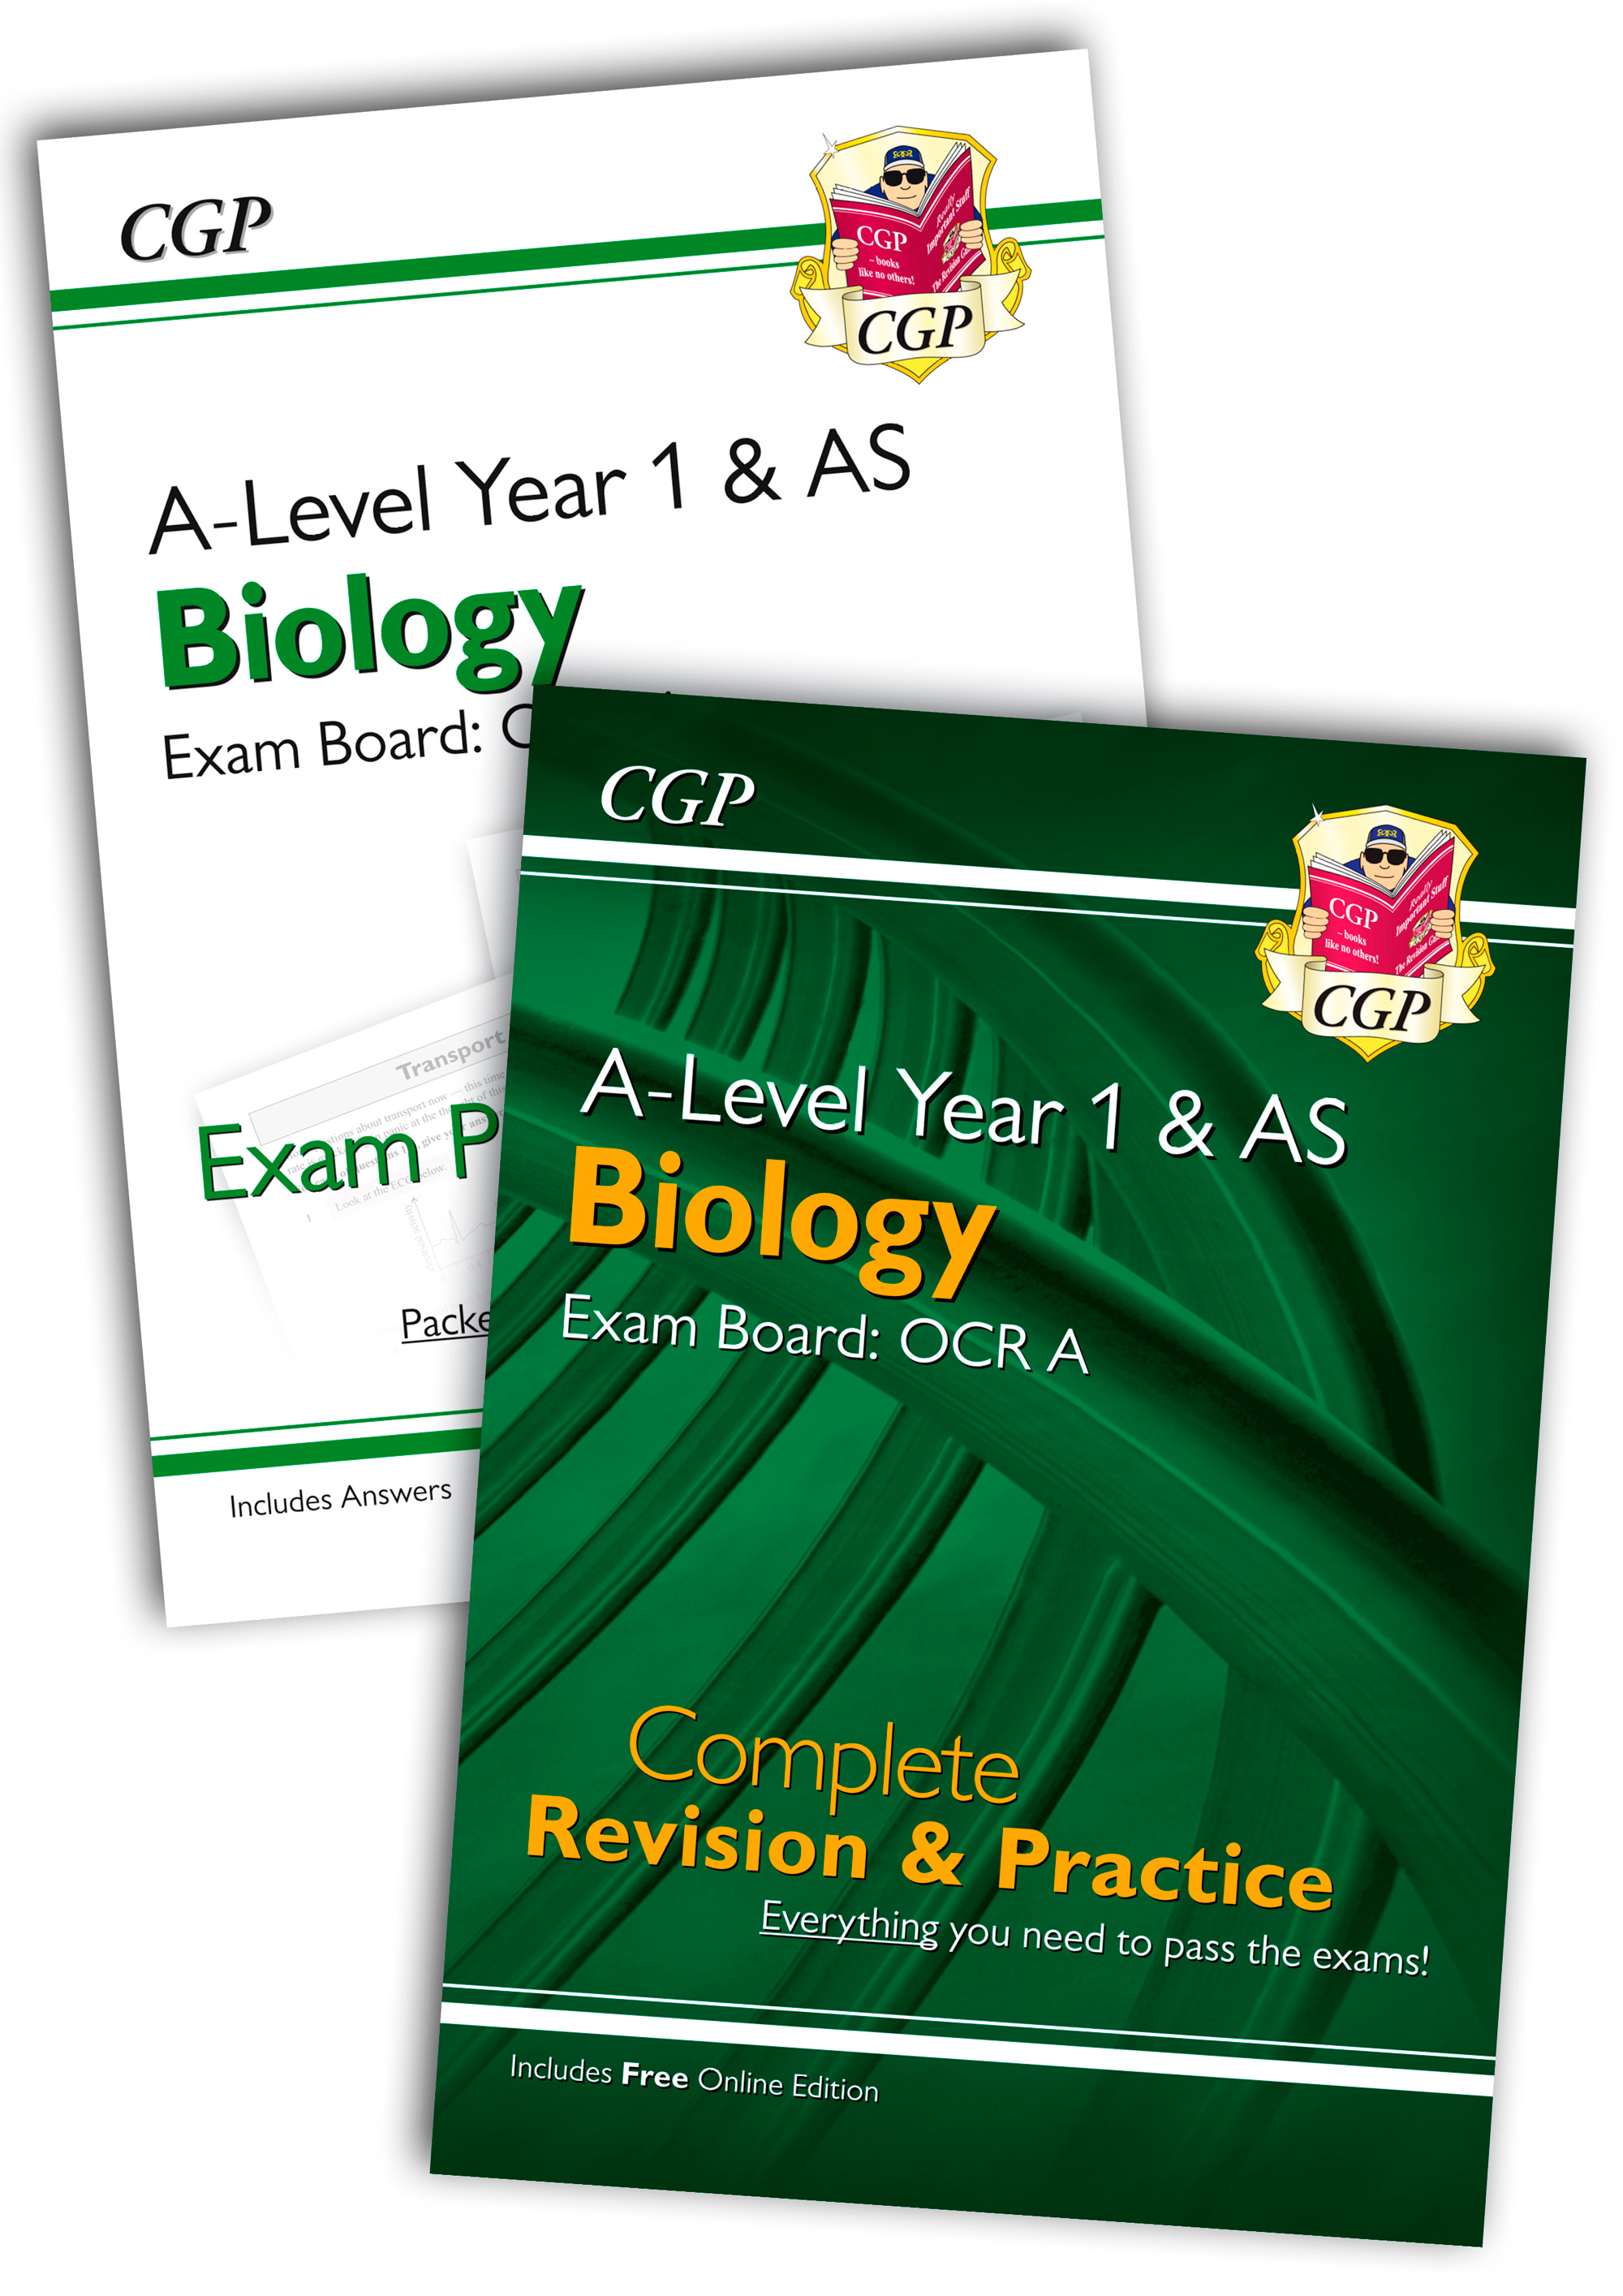 BRARQB51 - New Complete Revision and Exam Practice A-Level Biology Bundle: OCR A Year 1 & AS